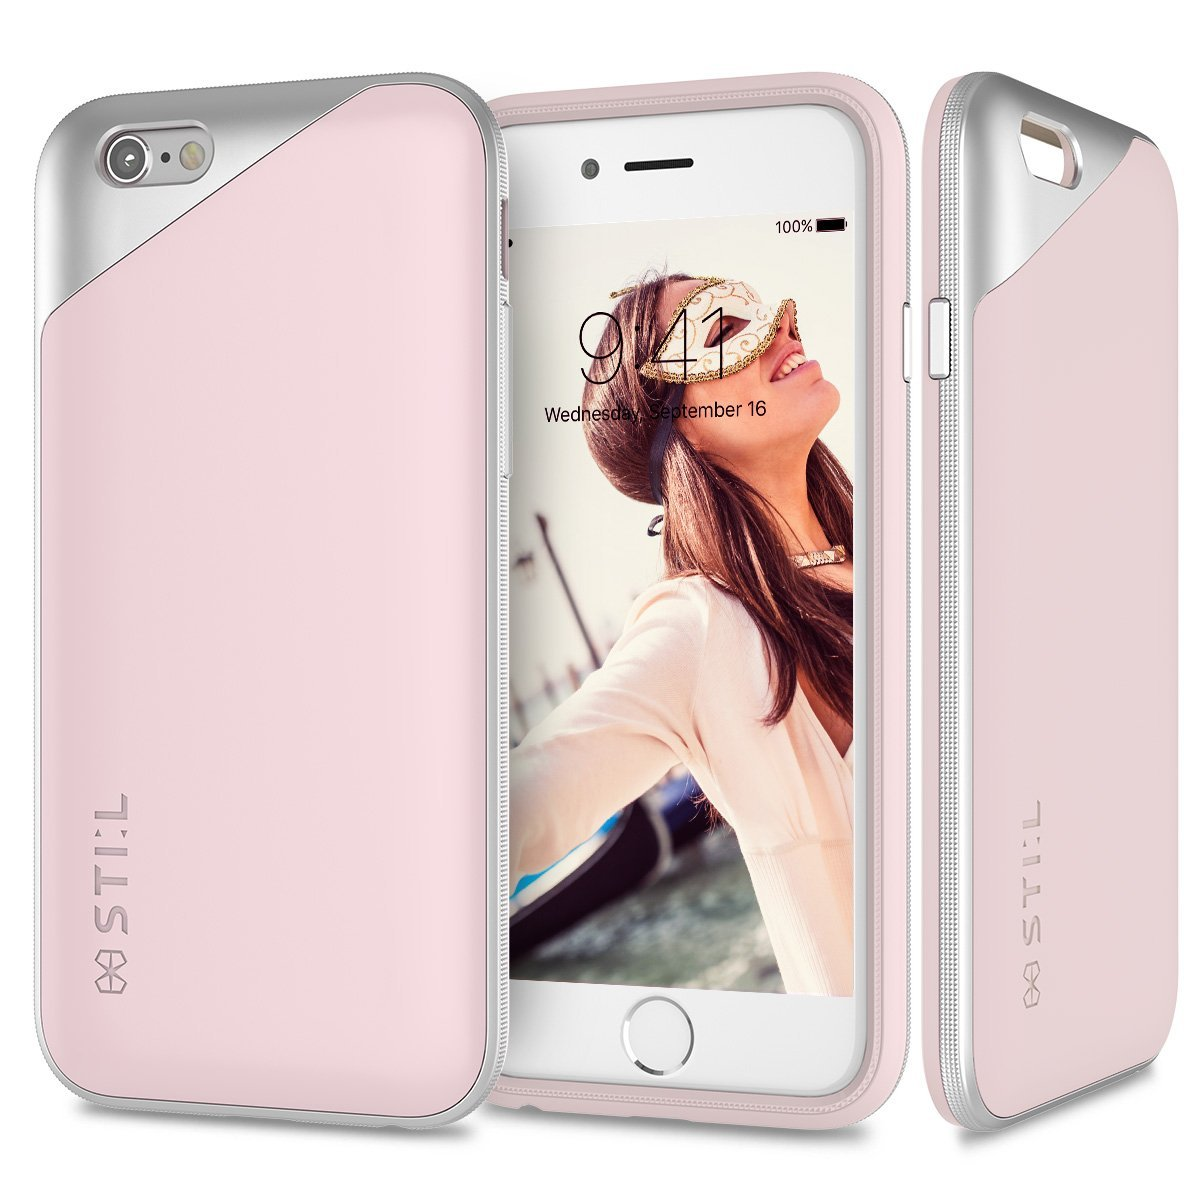 Pouzdro / kryt pro Apple iPhone 6 / 6S - STILMIND, MASQUERADE SOFT PINK